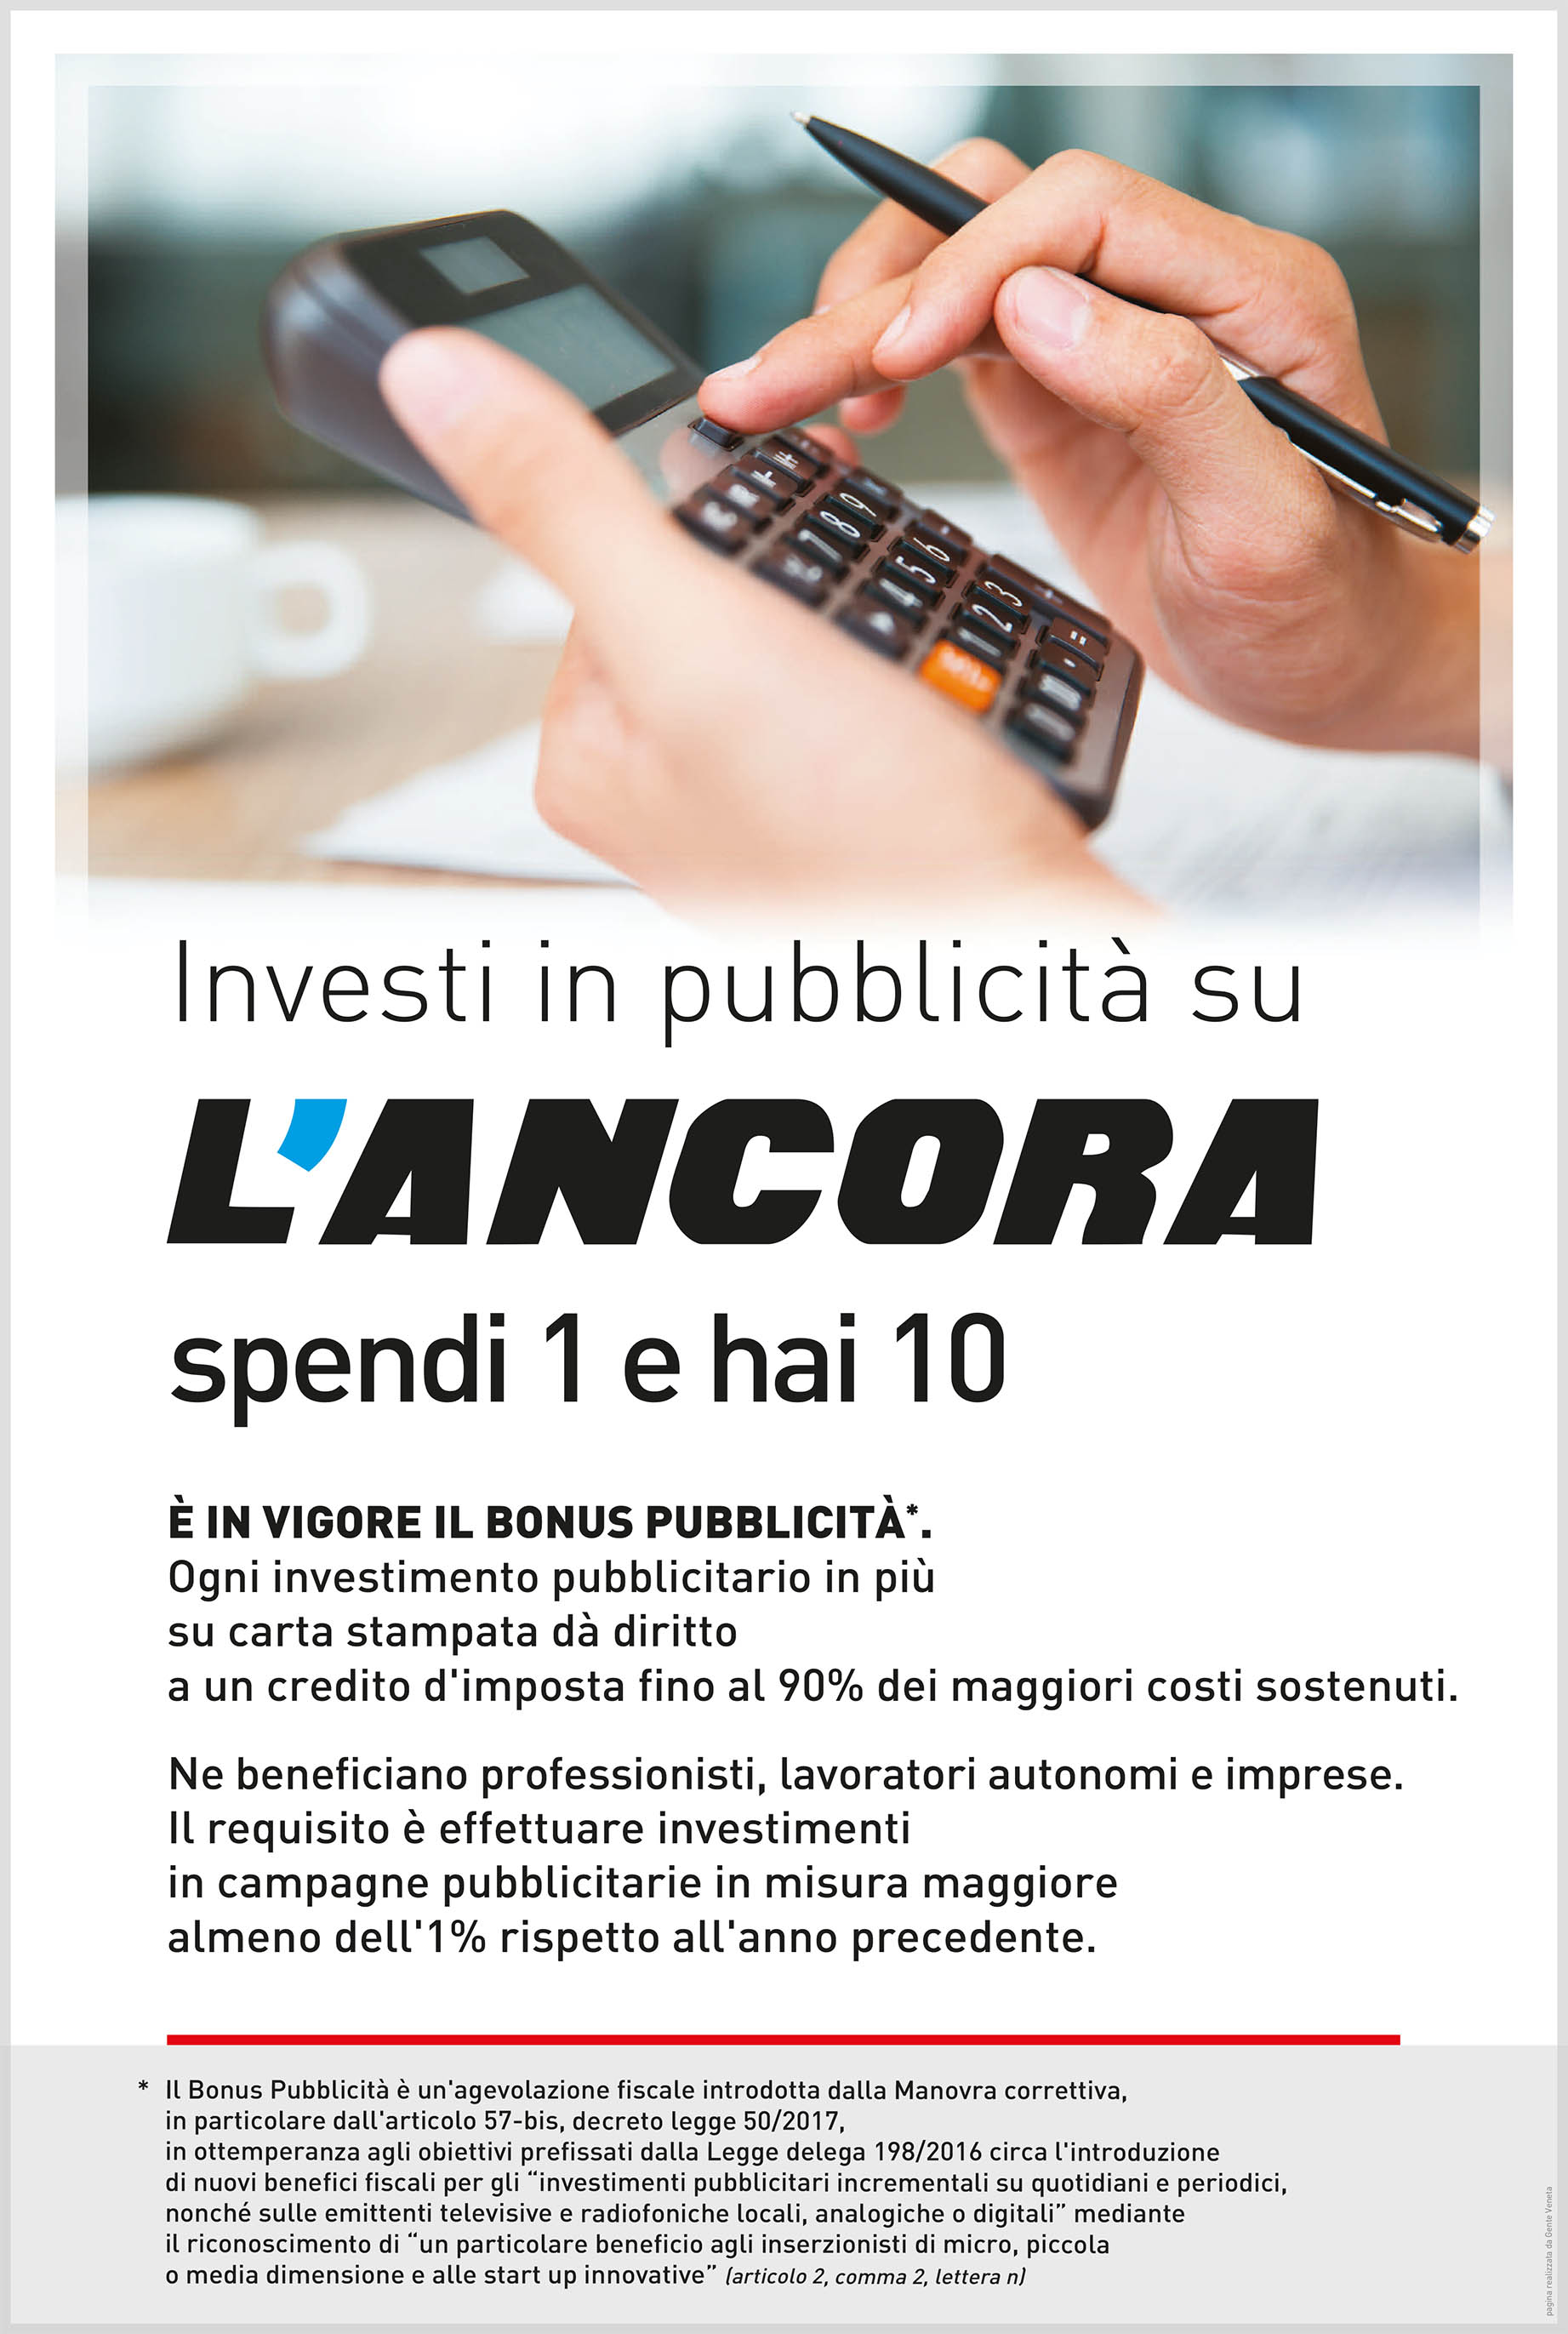 Investi in pubblicità